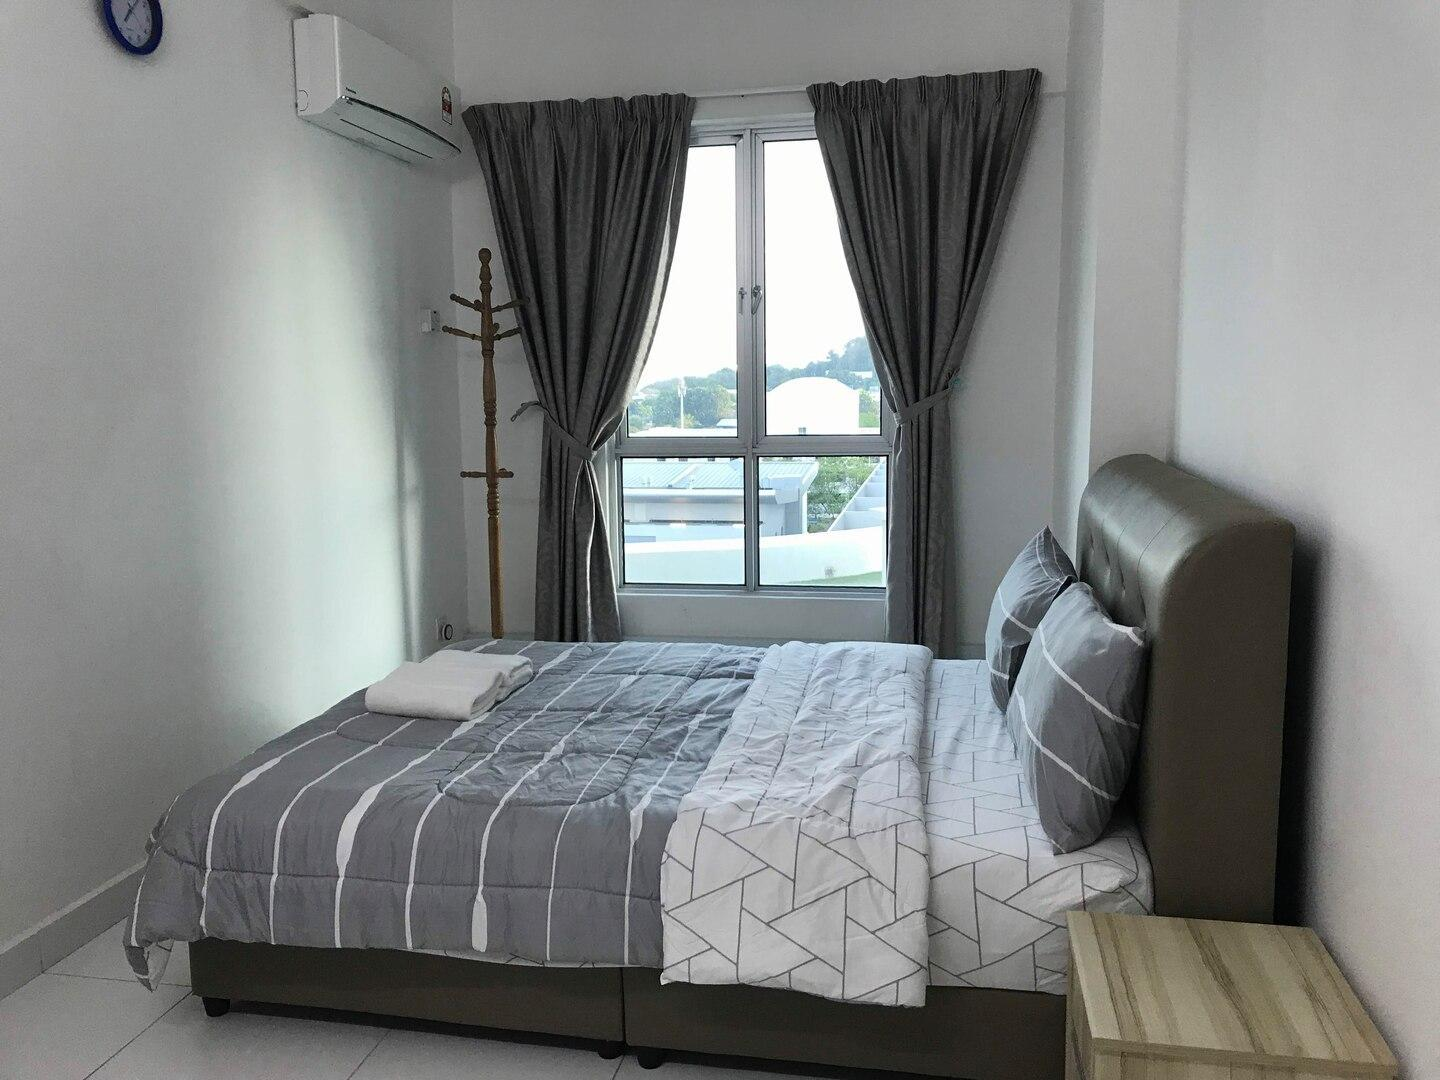 【NEW】3BR ·washer ·walk to Pantai Hosp & SPICE ·6p